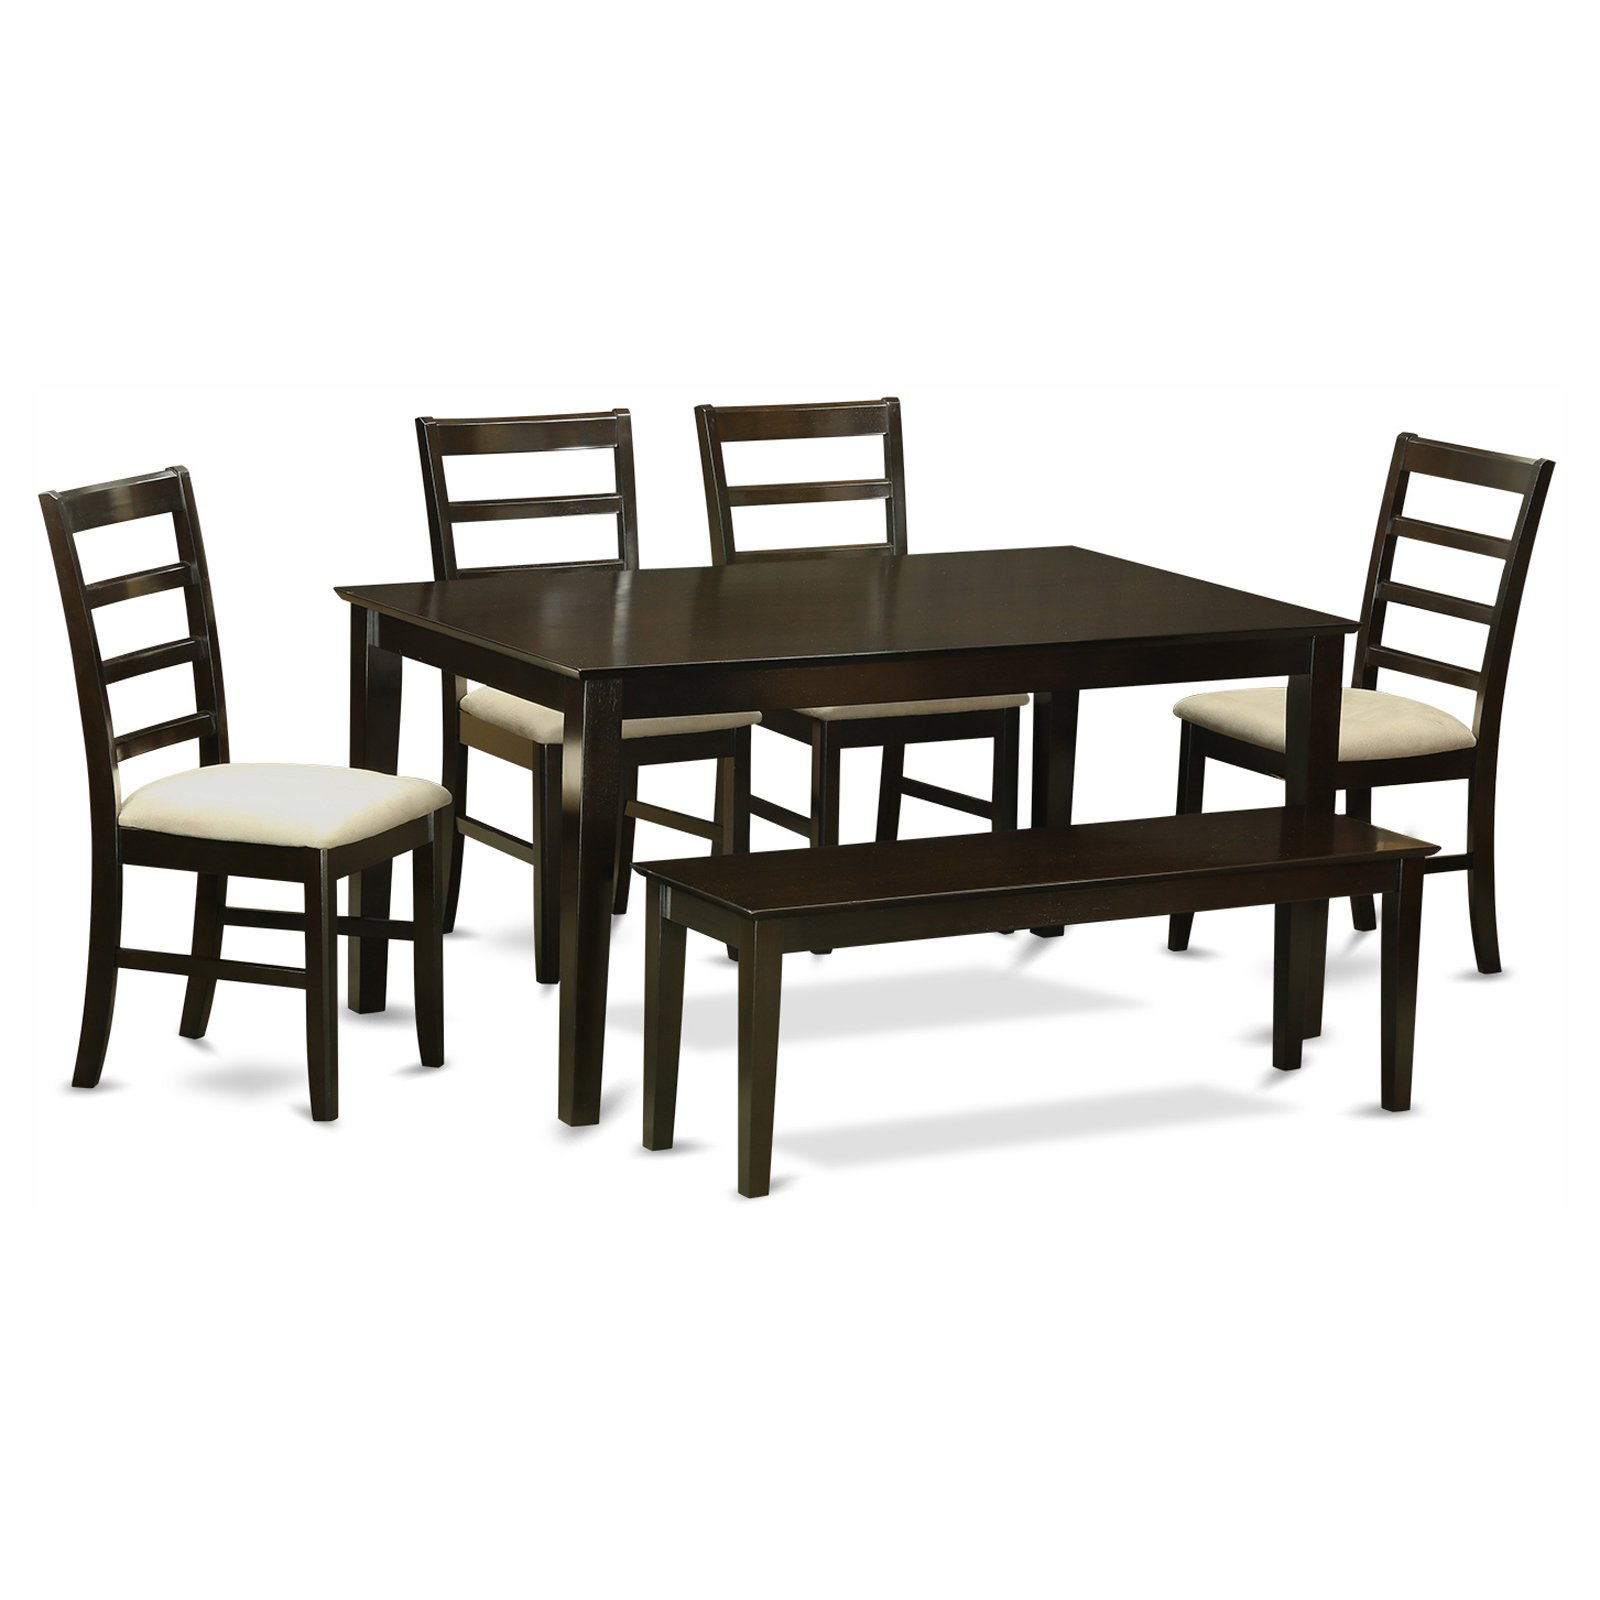 East West Furniture Capris 6 Piece Rectangular Dining Table Set with Parfait Microfiber Seat Chairs